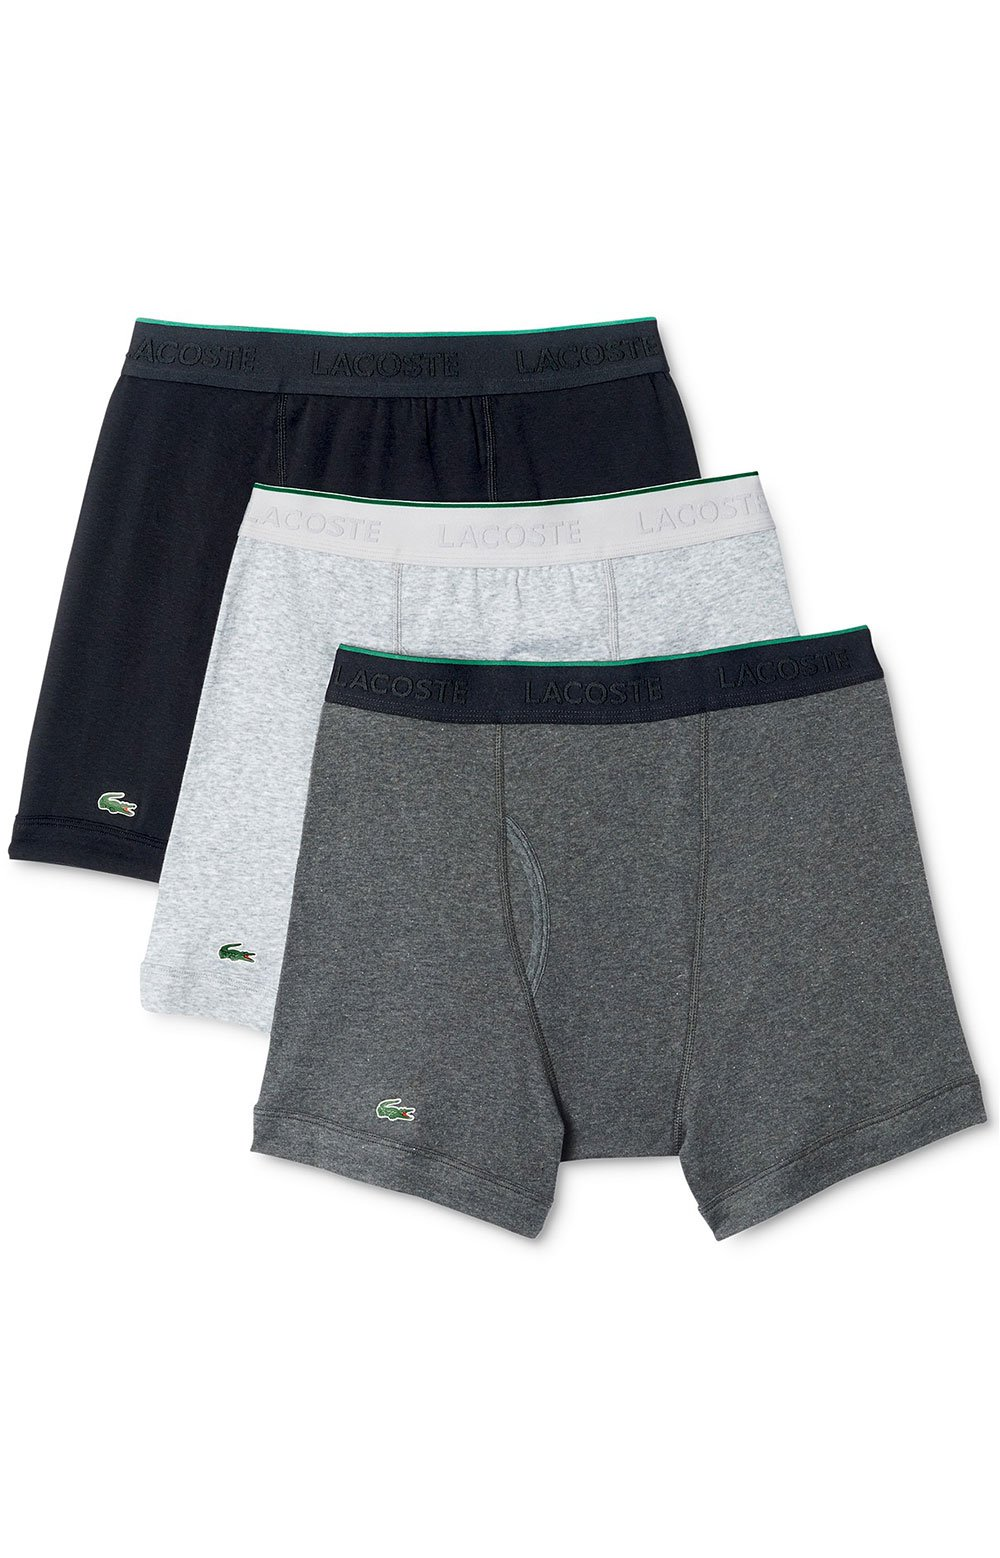 Lacoste (RAMC103) 3-Pack Boxer Briefs - Black/Grey/Charcoal